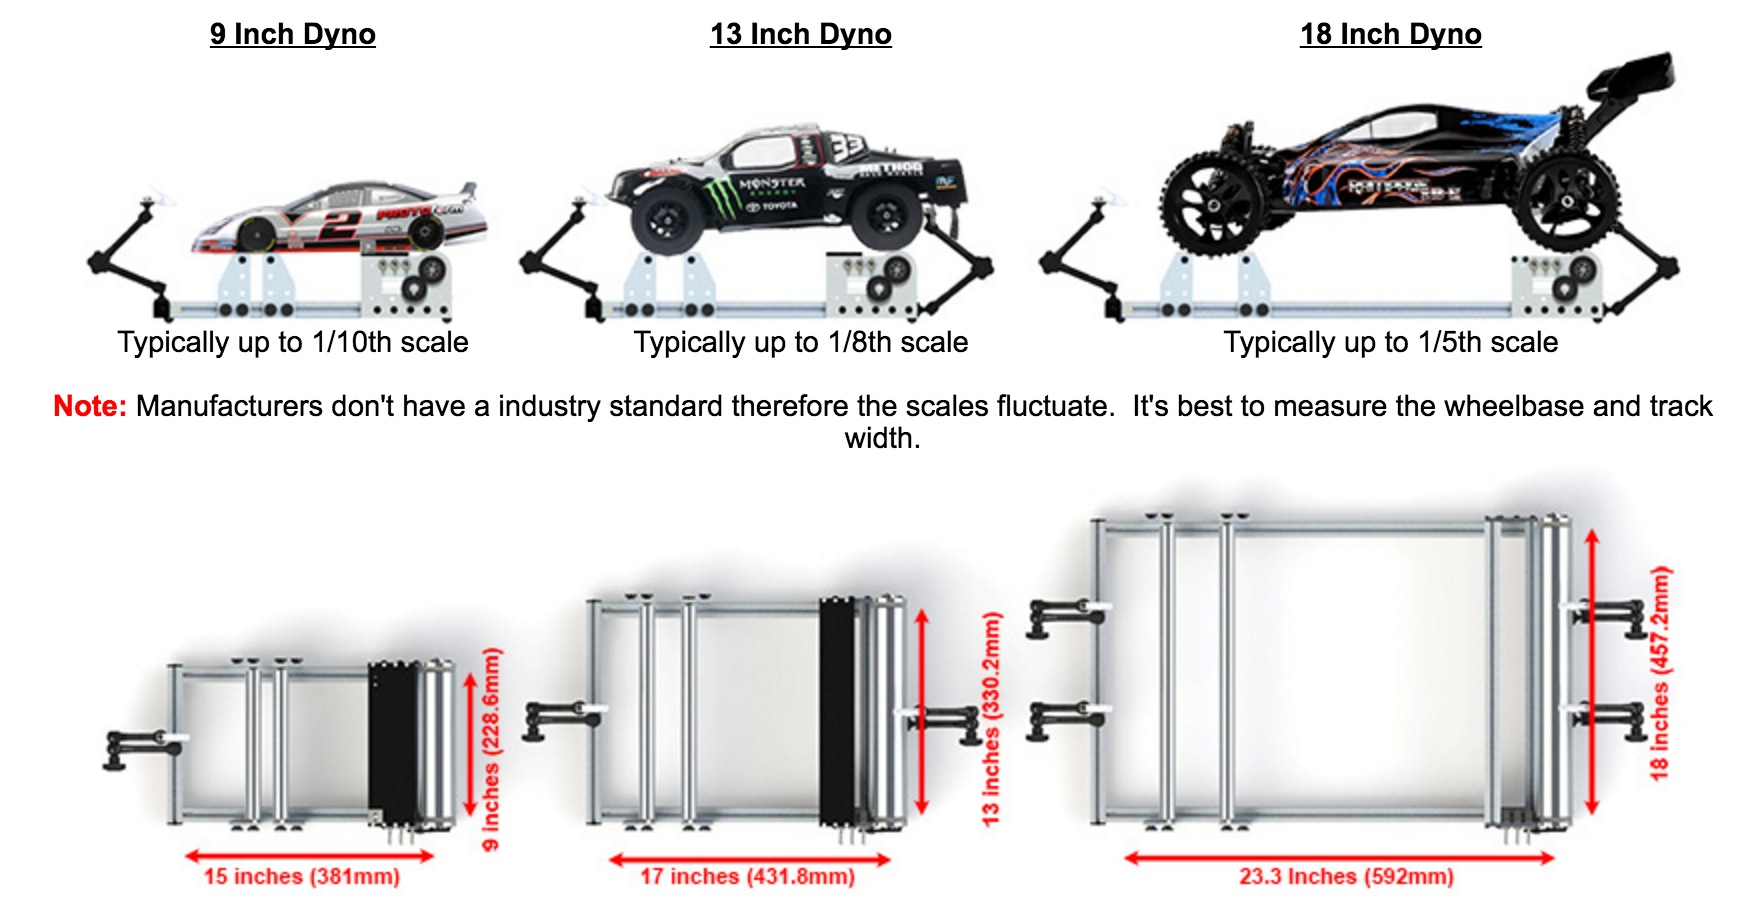 New McPappy Racing RC Brushless Chassis Dyno 2 0 [VIDEO] :: LiveRC